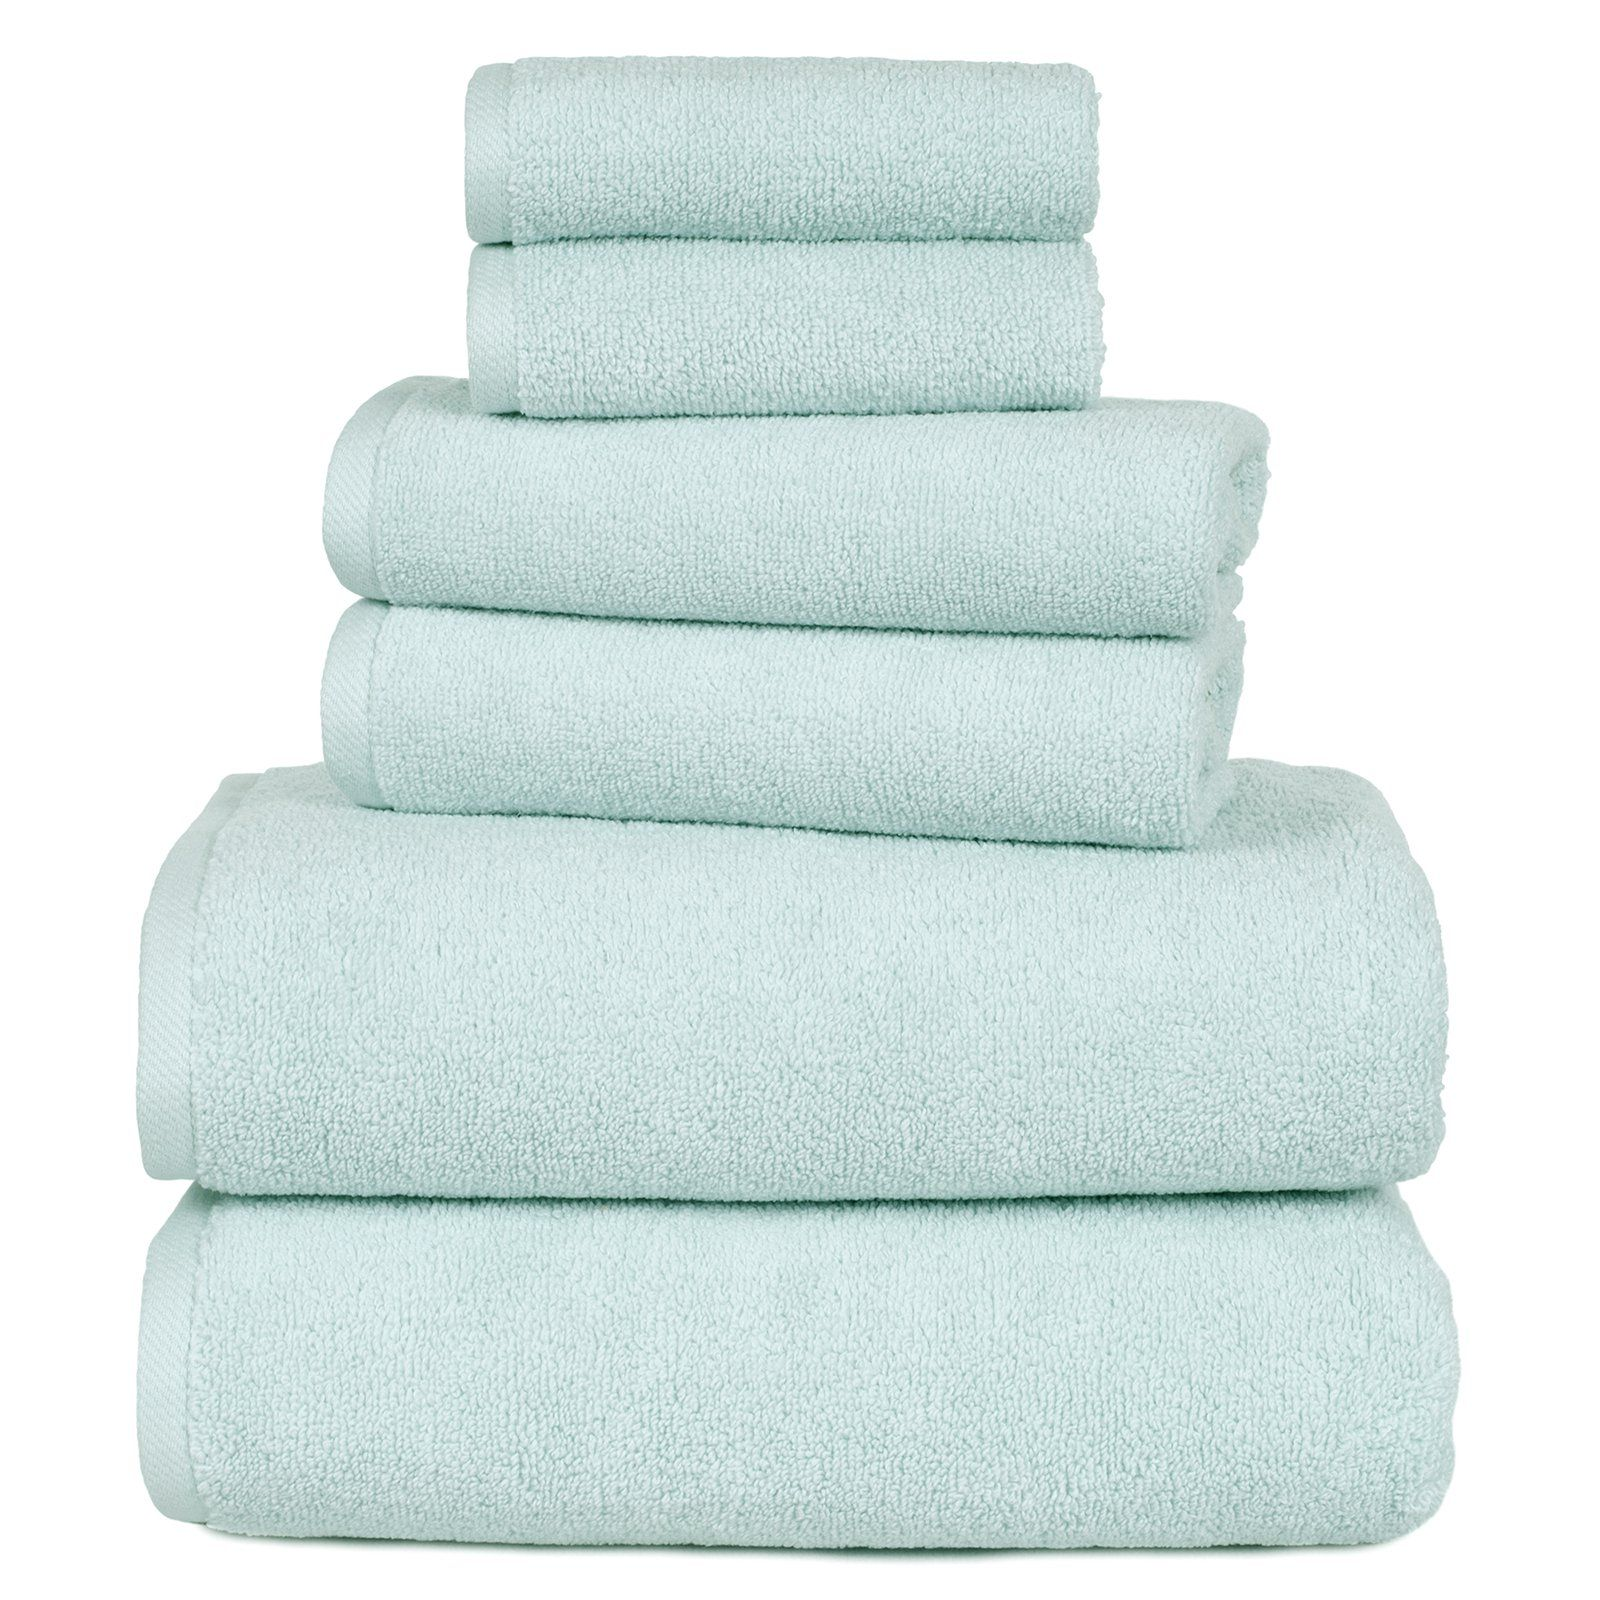 Lavish Home 100 Egyptian Cotton Zero Twist 6 Piece Towel Set